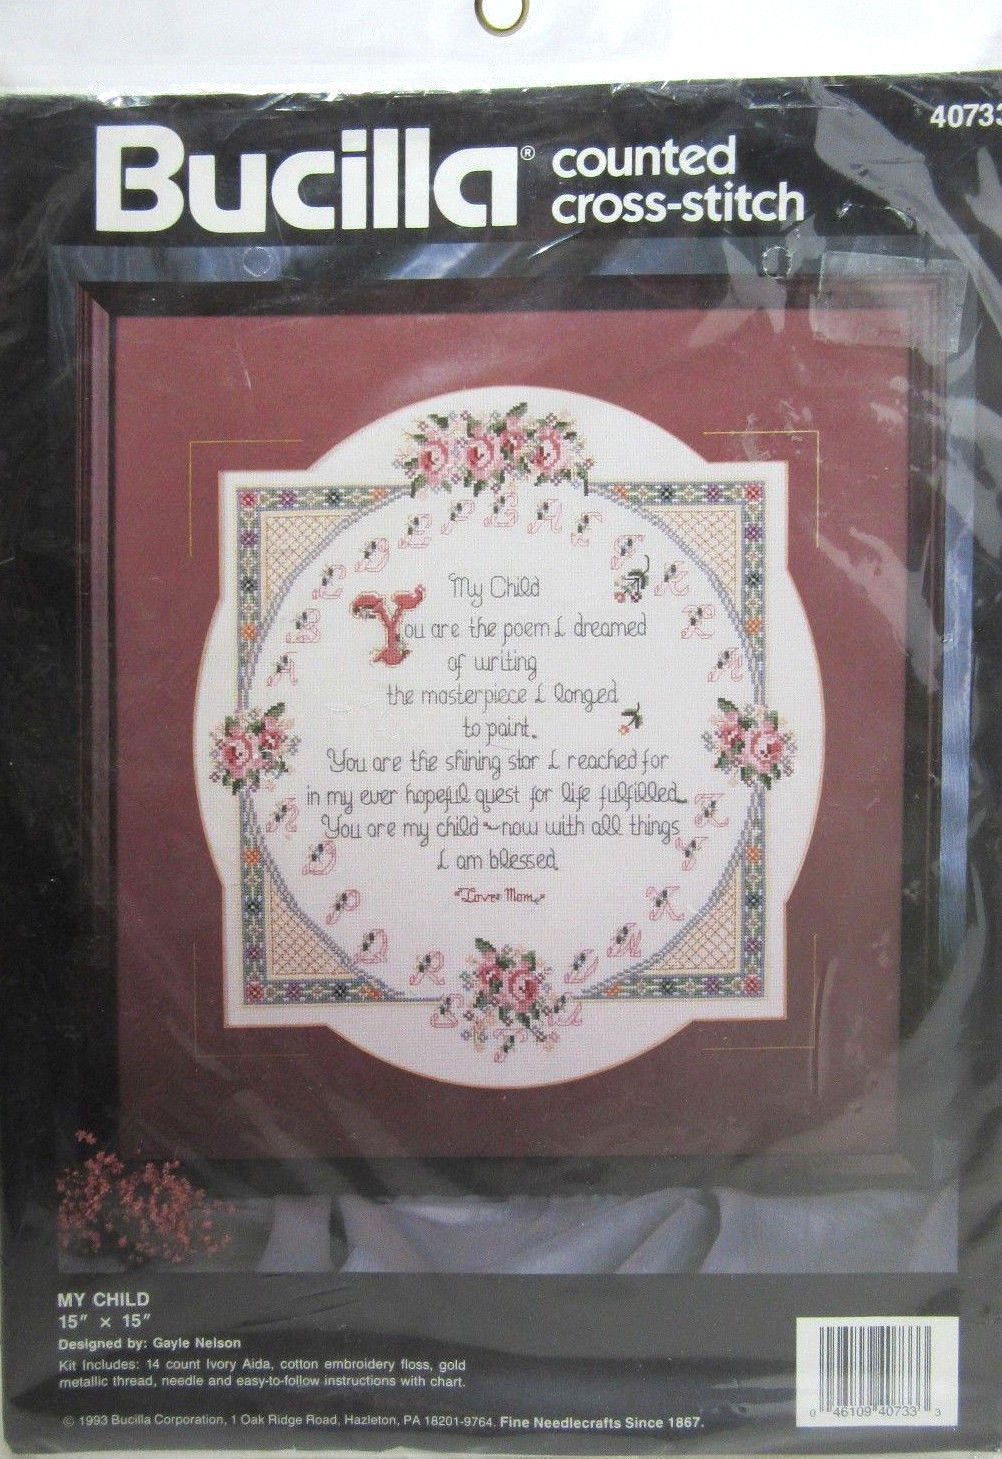 "Bucilla My Child Counted Cross Stitch Kit 40733 15"" x 15"" Poem Memories 1993 VTG"